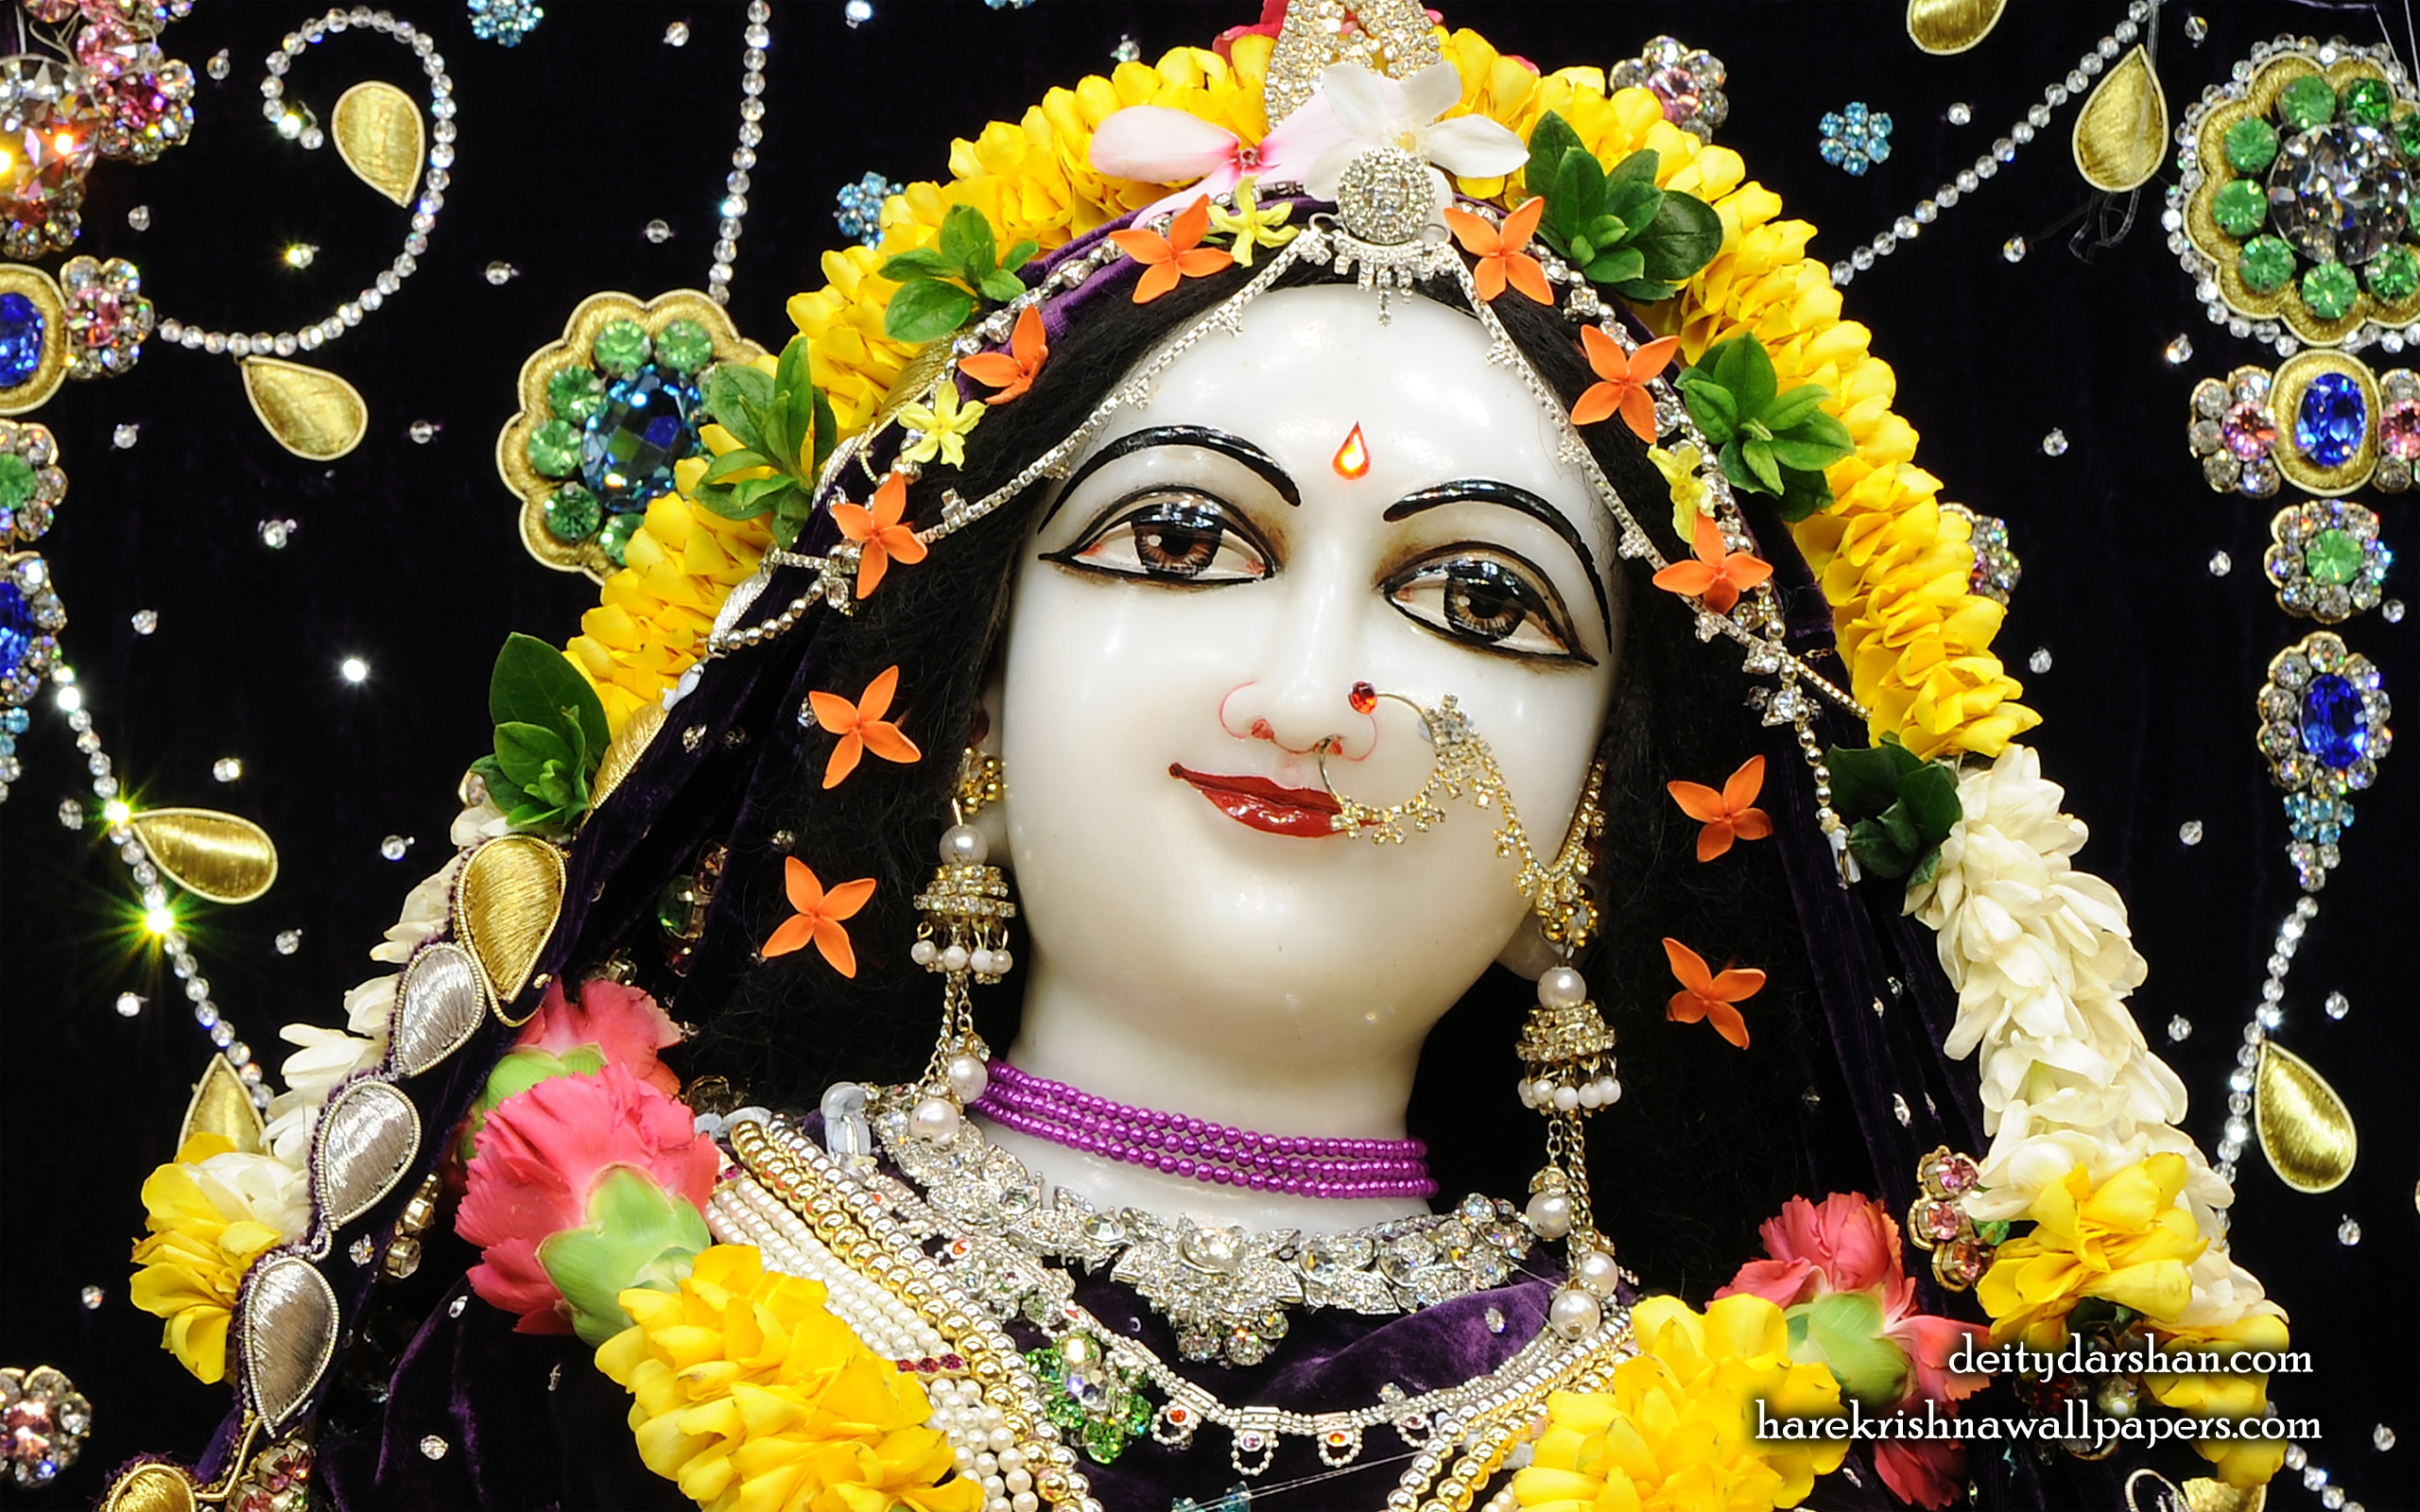 Srimati Radharani Close up Wallpaper (090) Size 2560x1600 Download